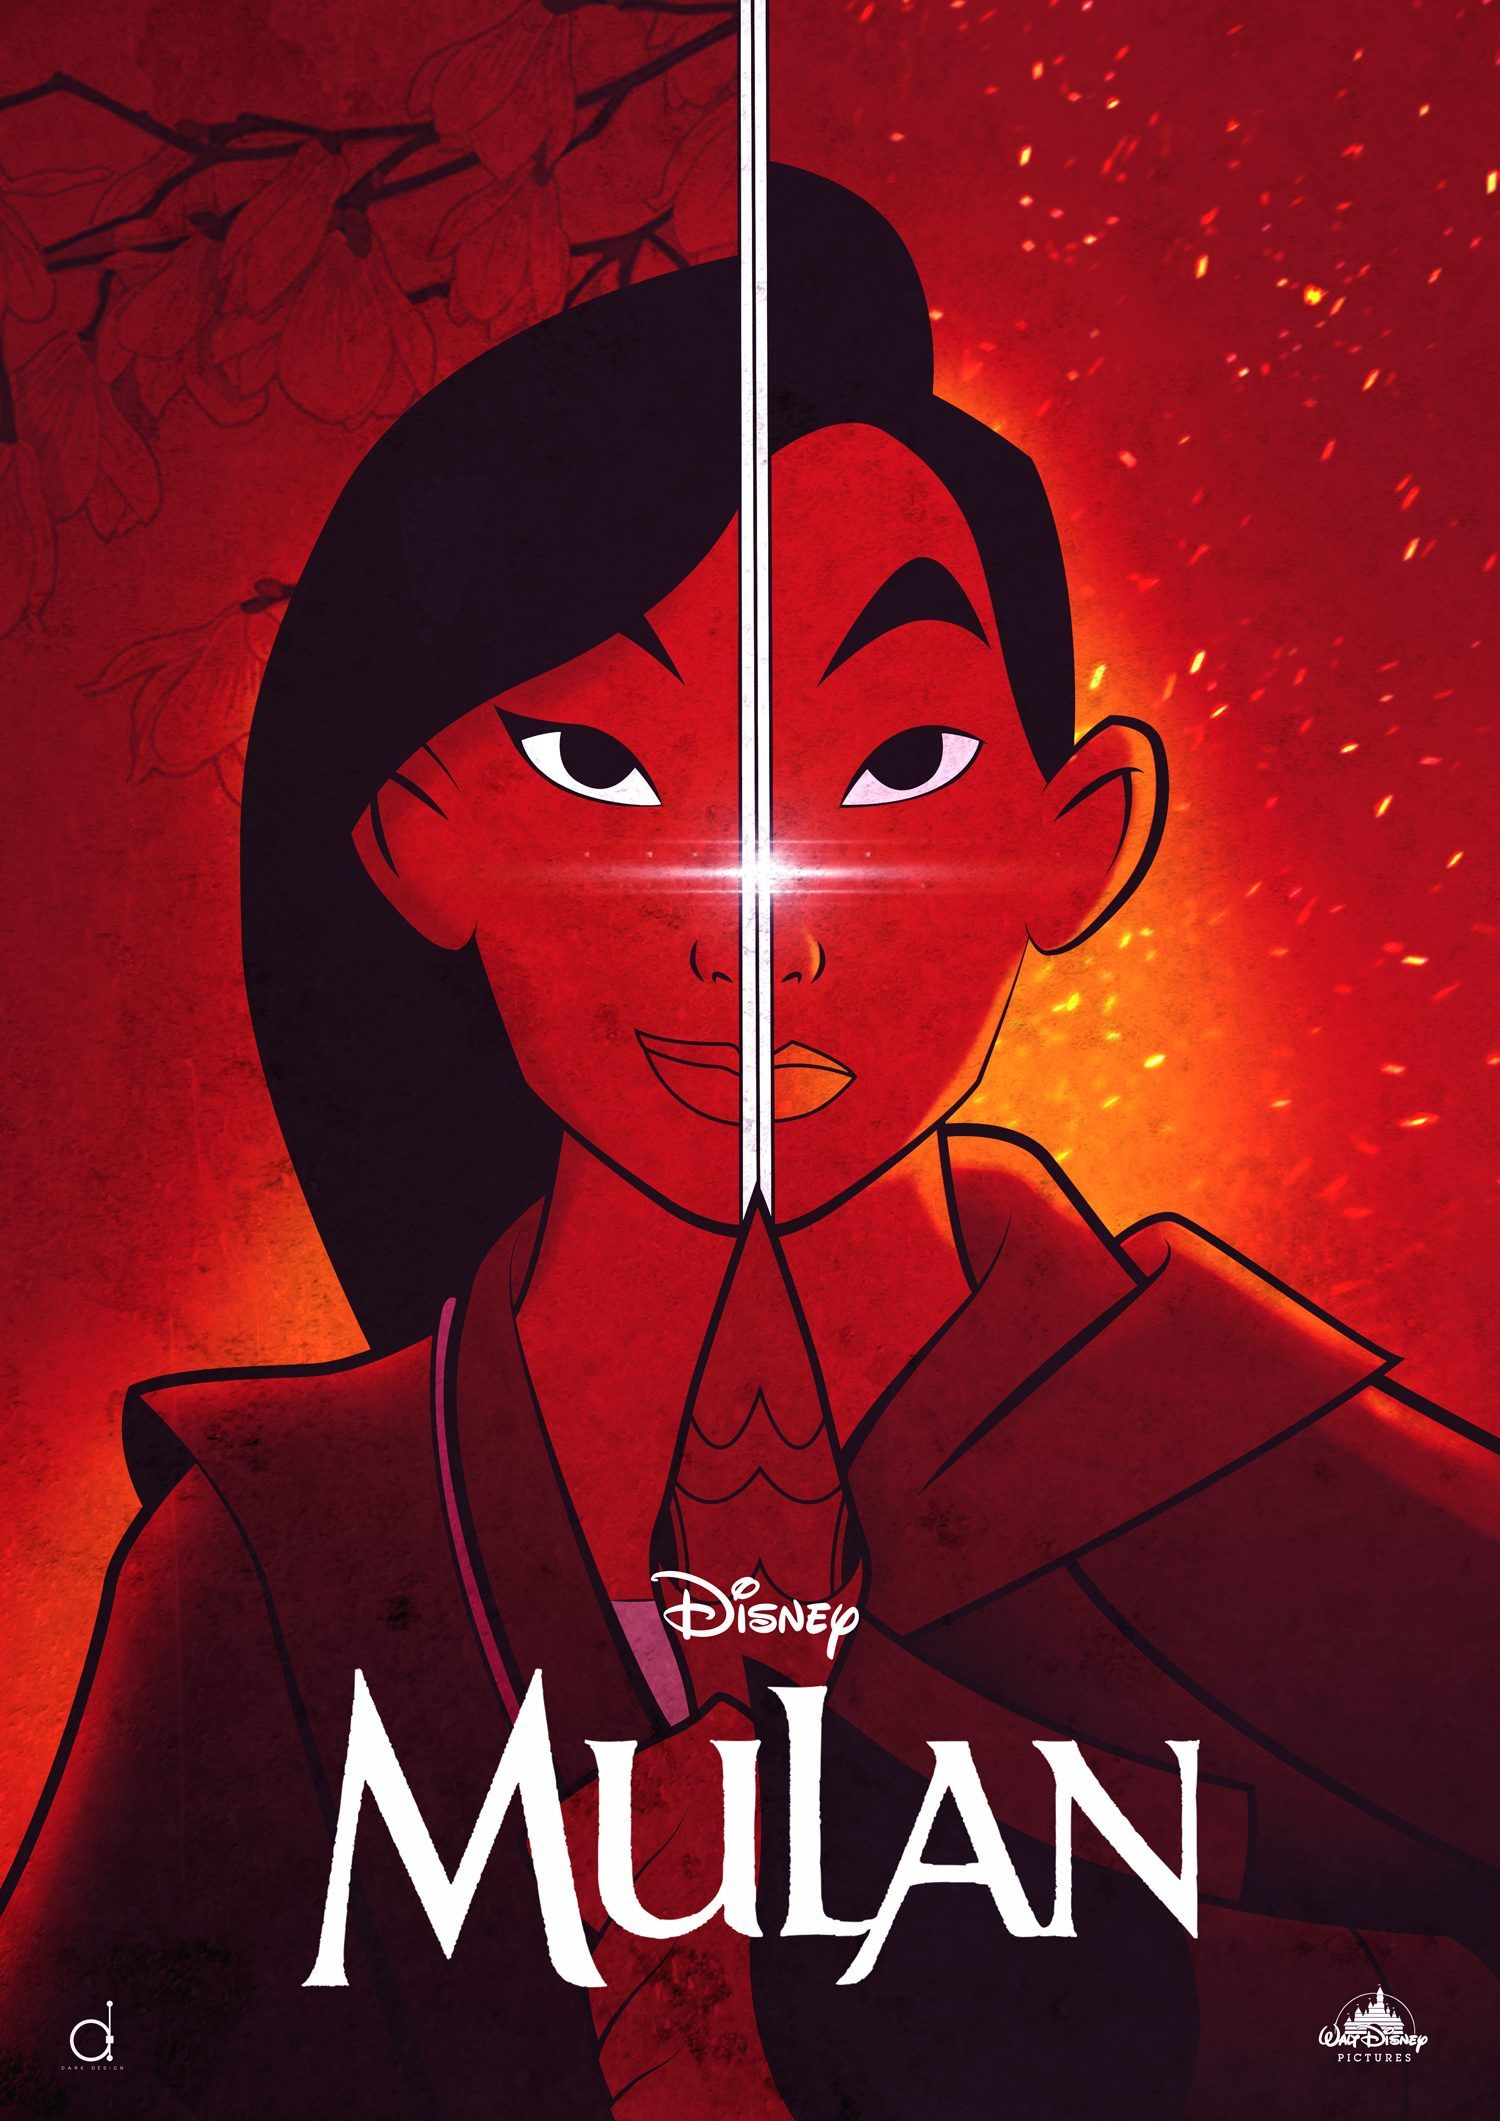 Mulan 1998 1500 X 2121 Mulan Mulan Disney Mulan Movie